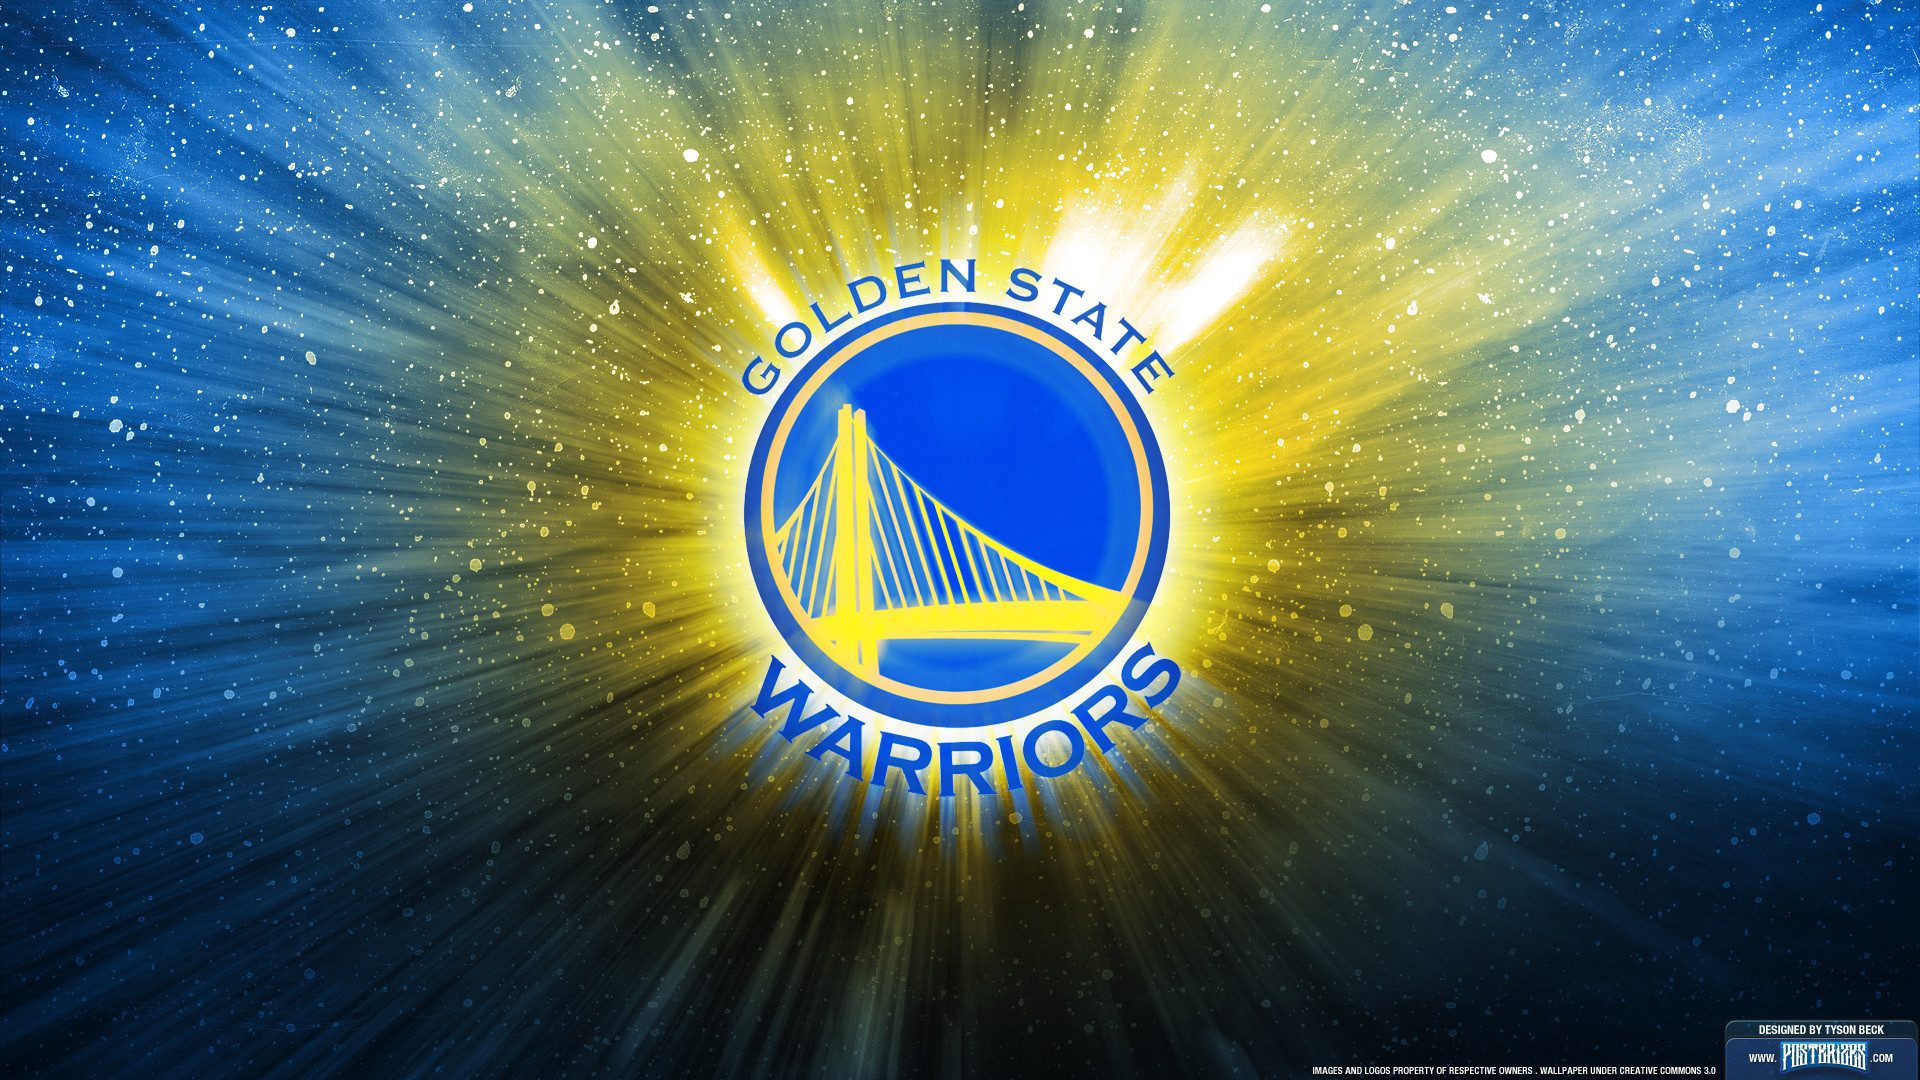 GOLDEN STATE WARRIORS Nba Basketball abstract Wallpapers HD / Desktop and  Mobile Backgrounds